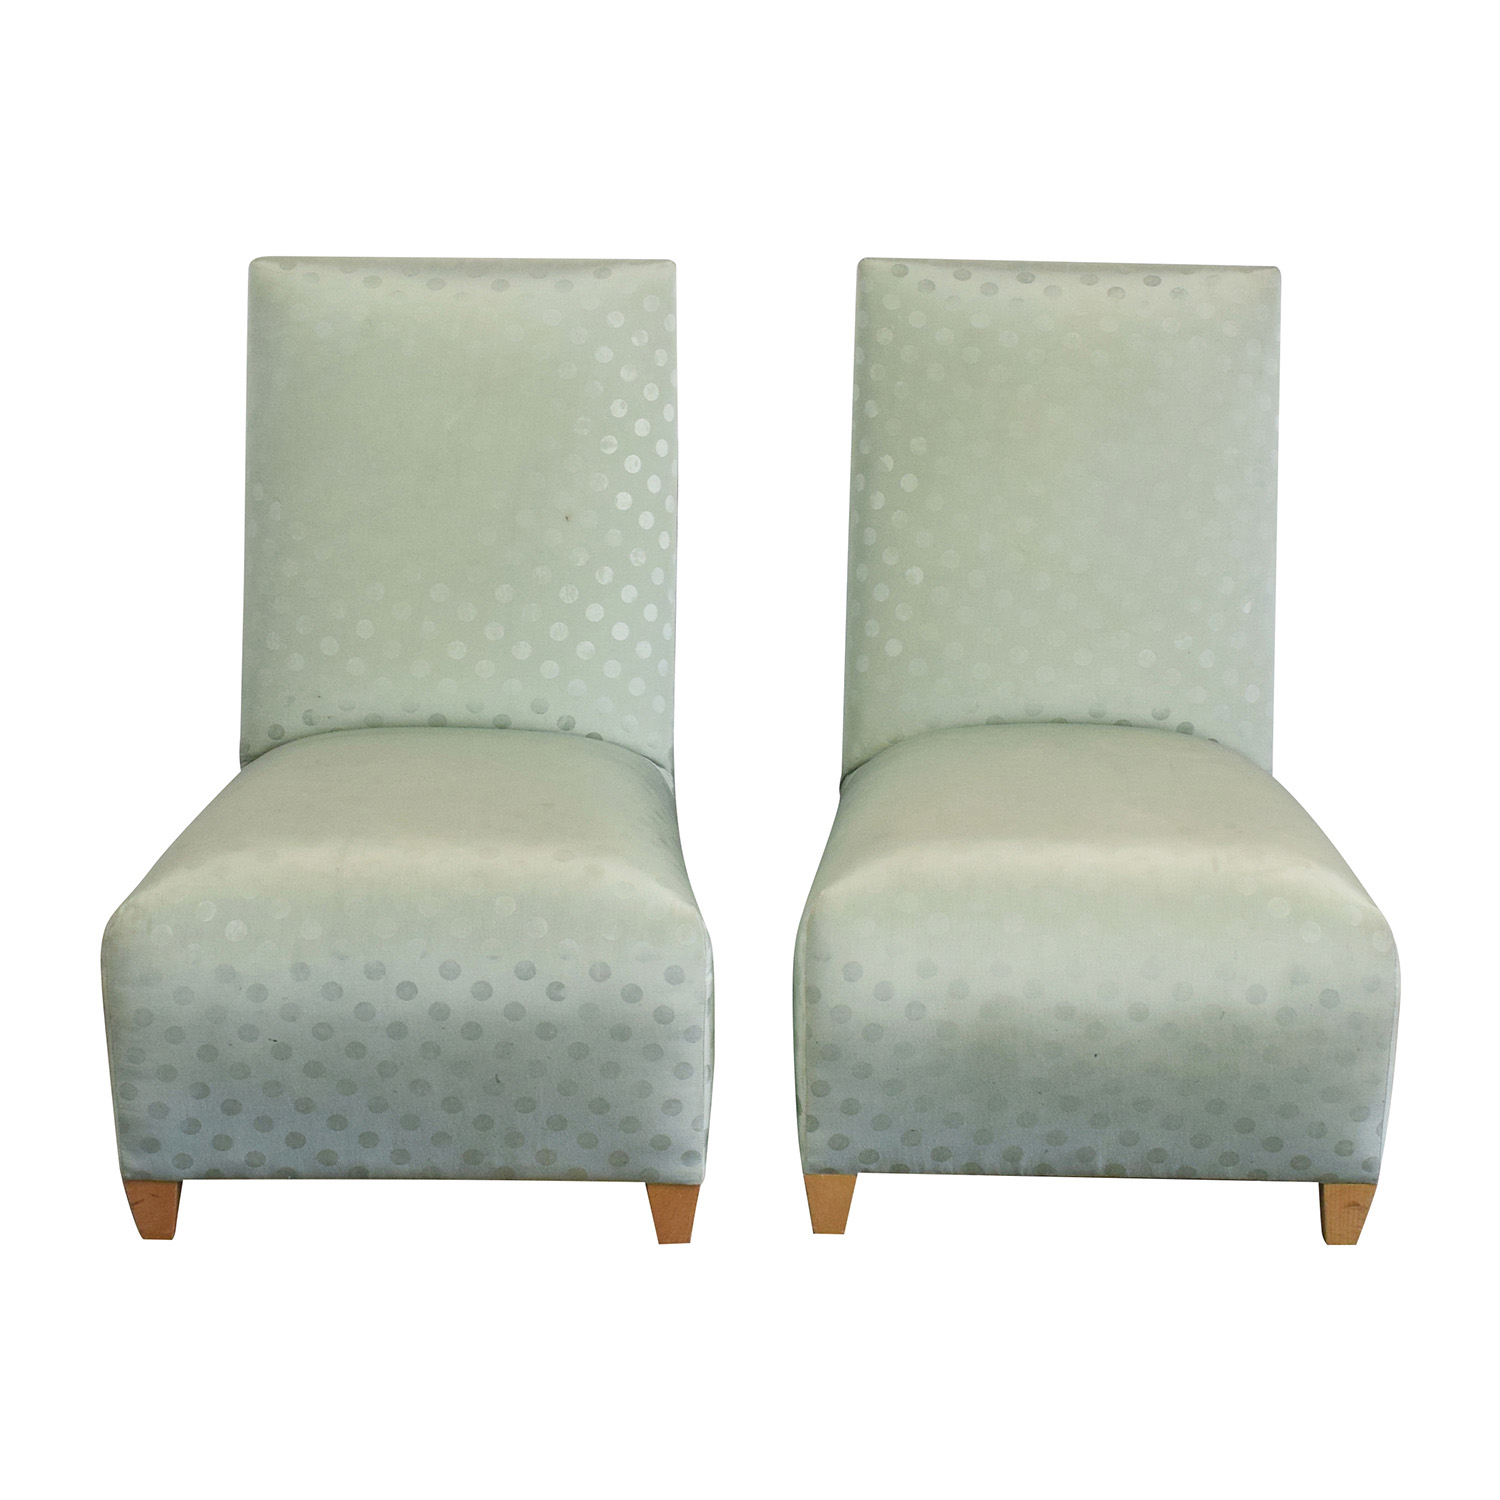 Donghia Donghia Light Green Chairs dimensions